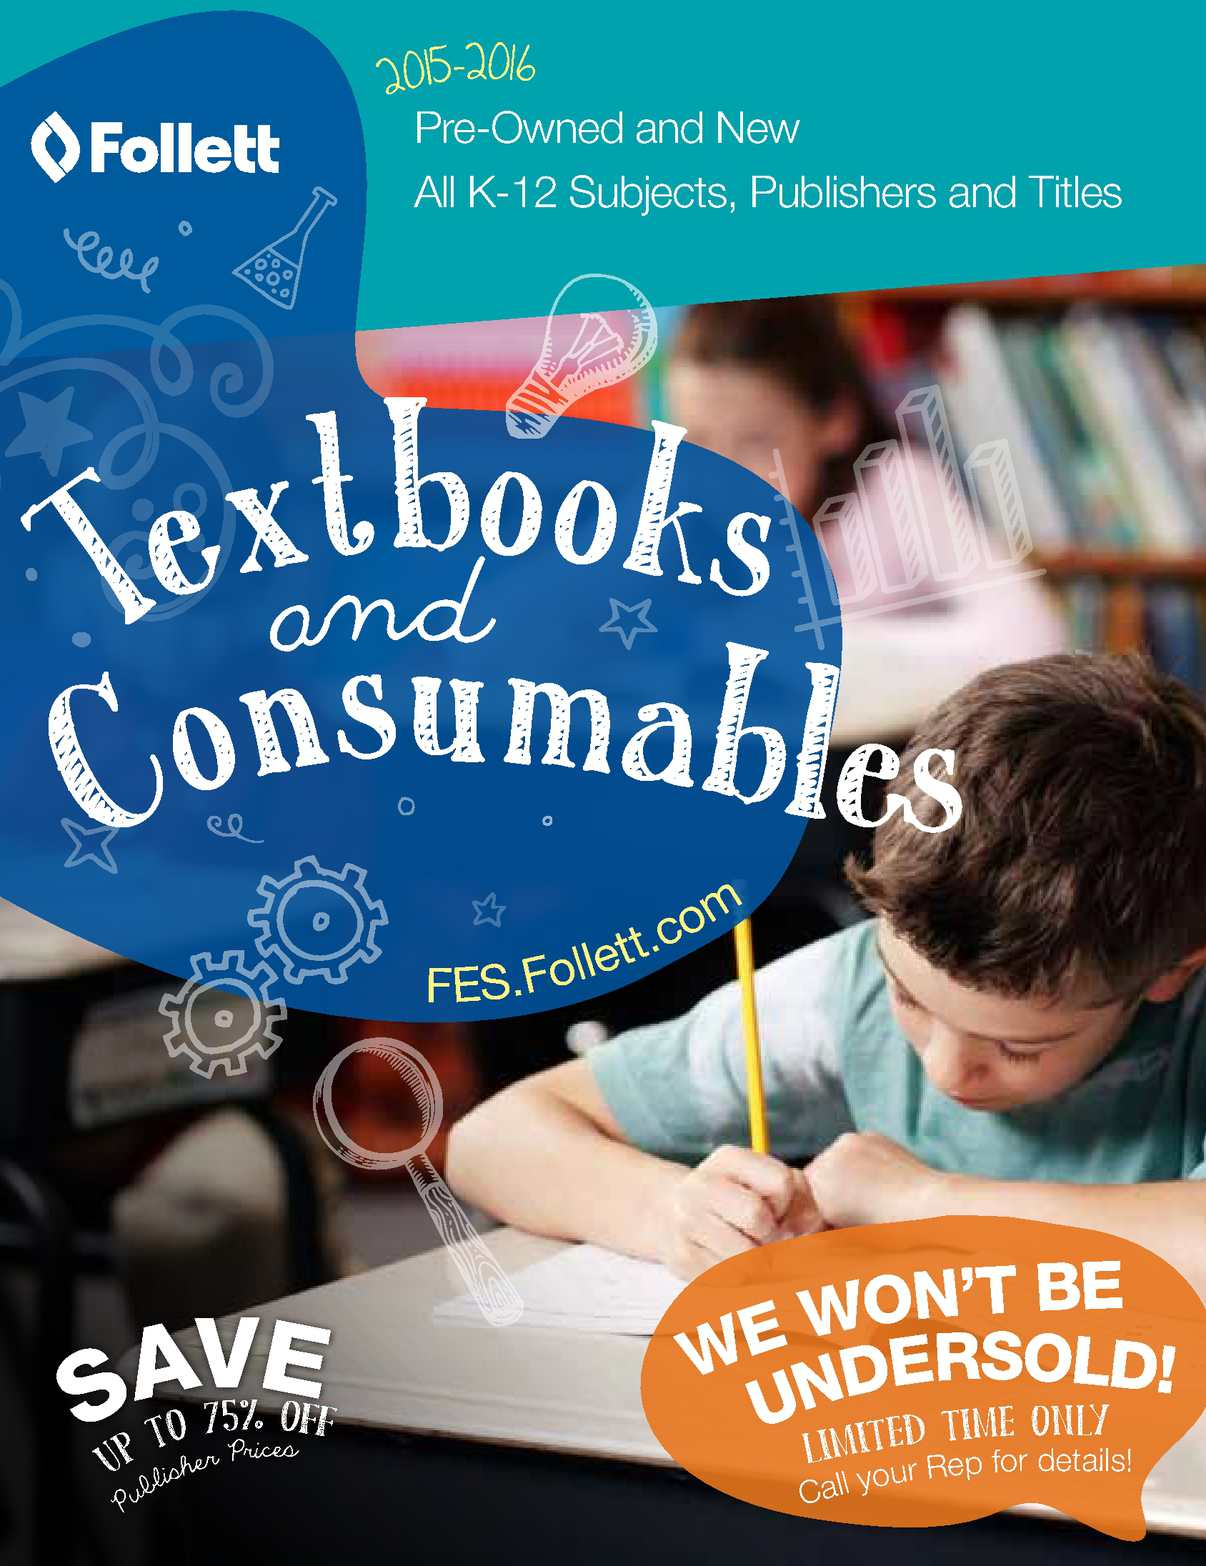 Calam O Textbooks And Consumables